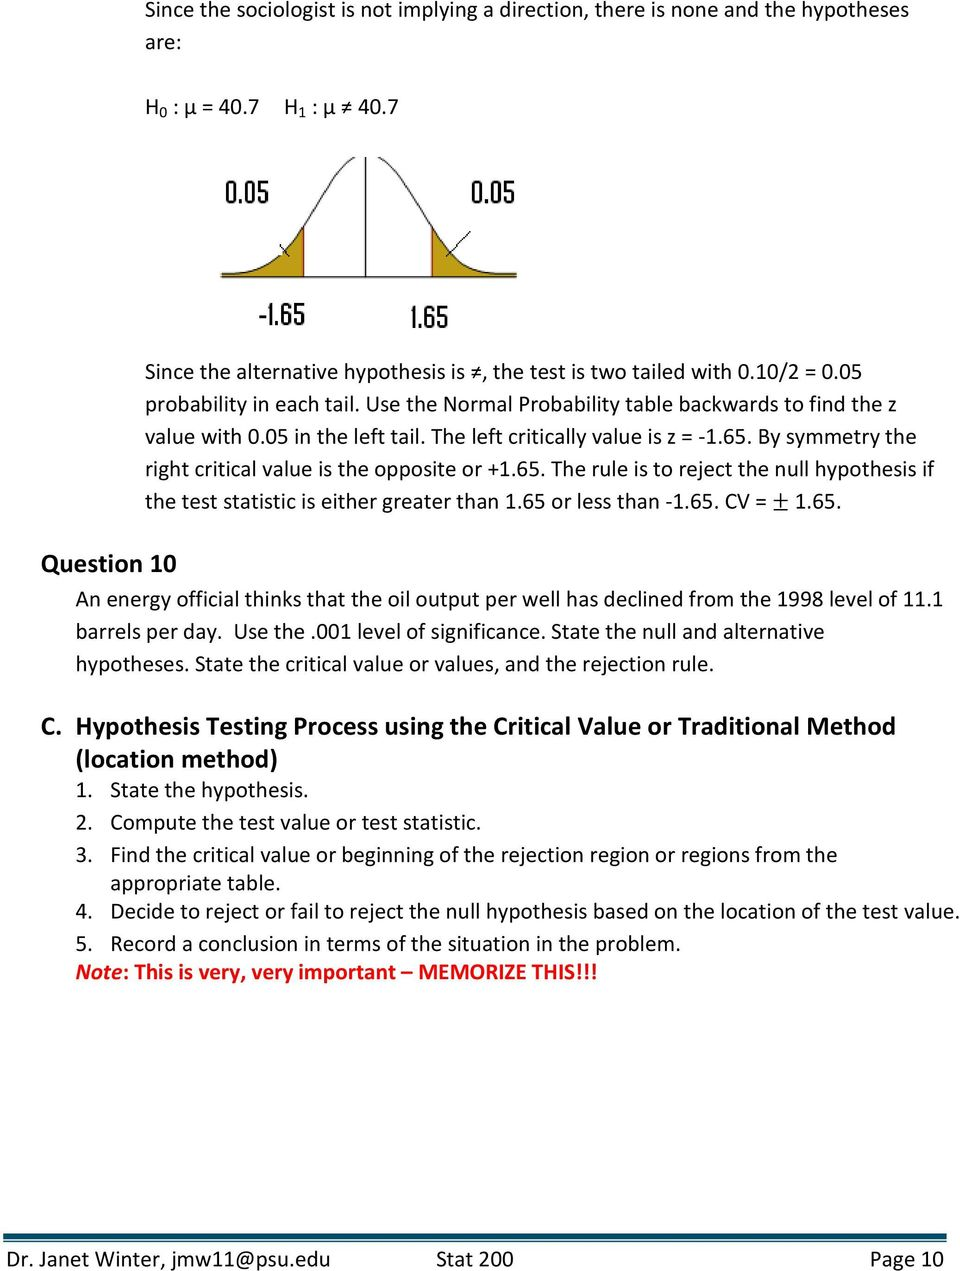 By symmetry the right critical value is the opposite or +1.65. The rule is to reject the null hypothesis if the test statistic is either greater than 1.65 or less than -1.65. CV = ± 1.65. Question 10 An energy official thinks that the oil output per well has declined from the 1998 level of 11.